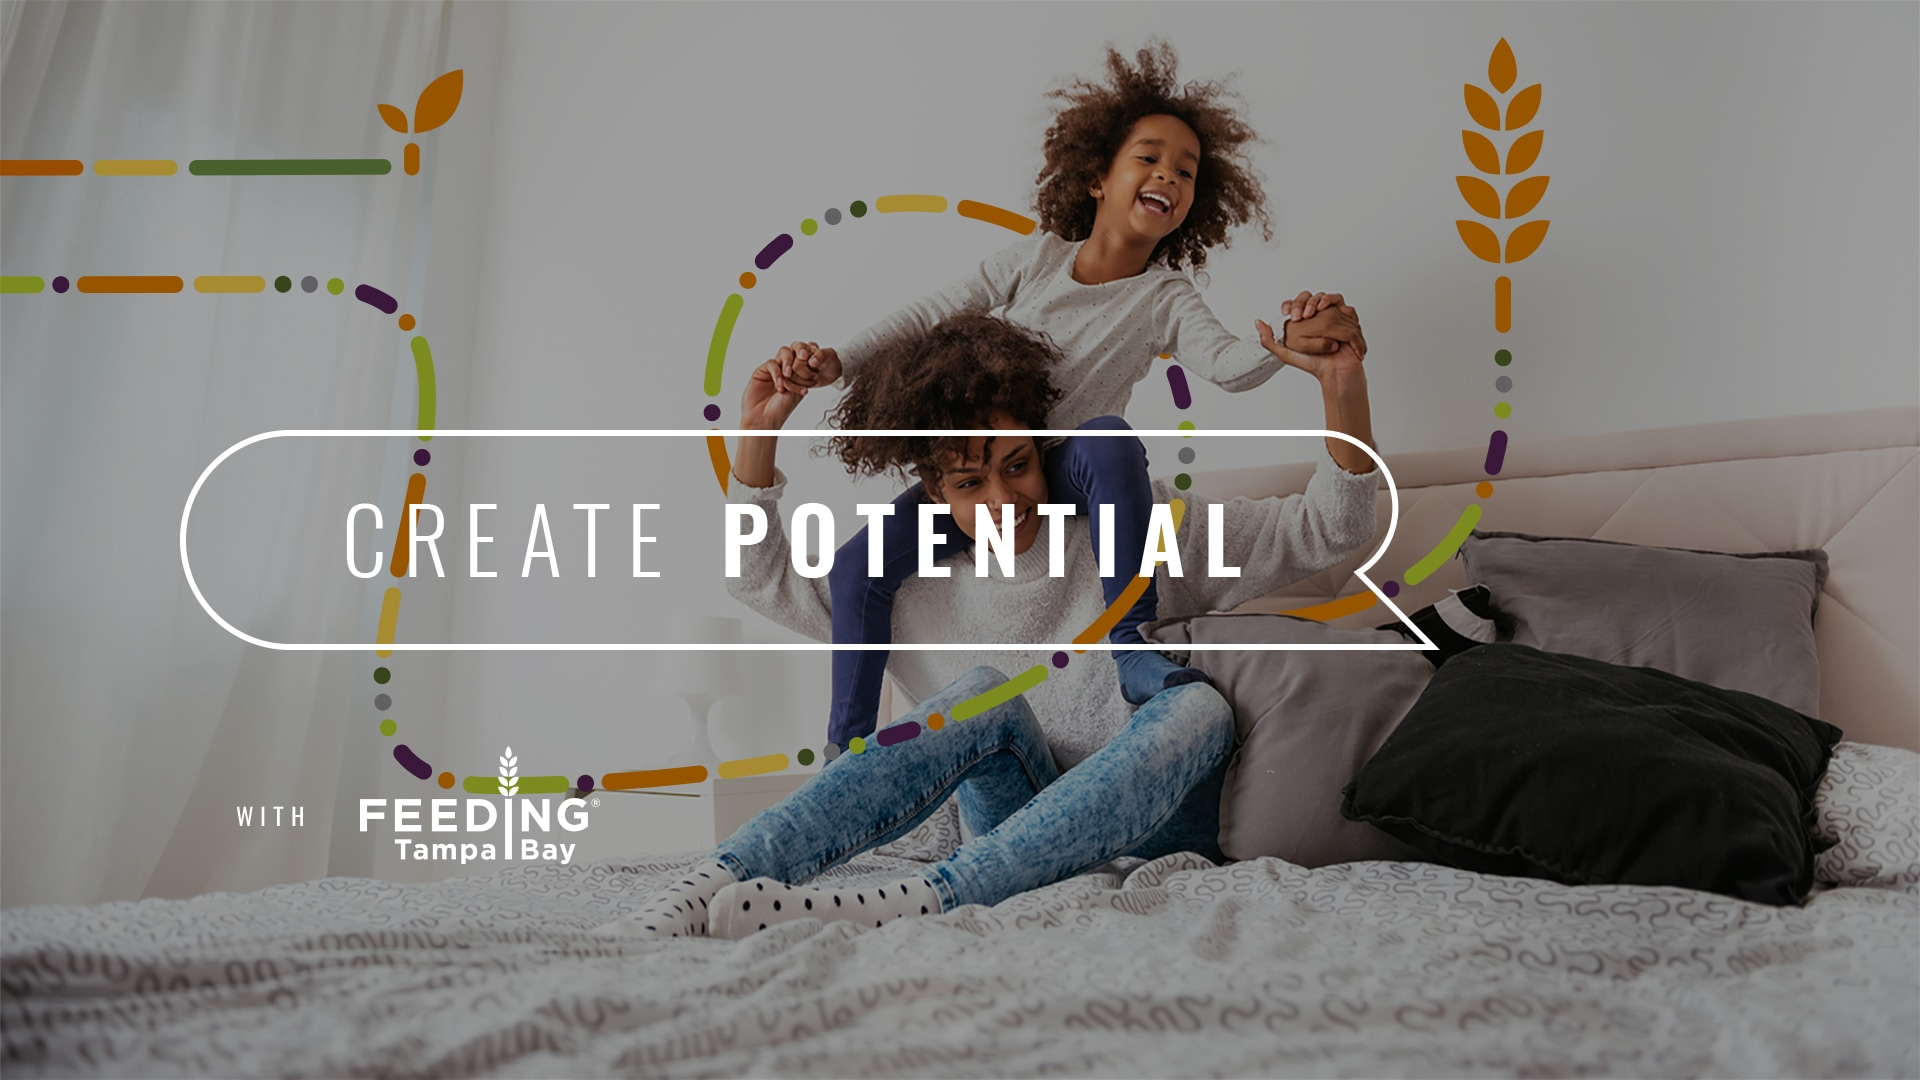 Create Potential with Feeding Tampa Bay